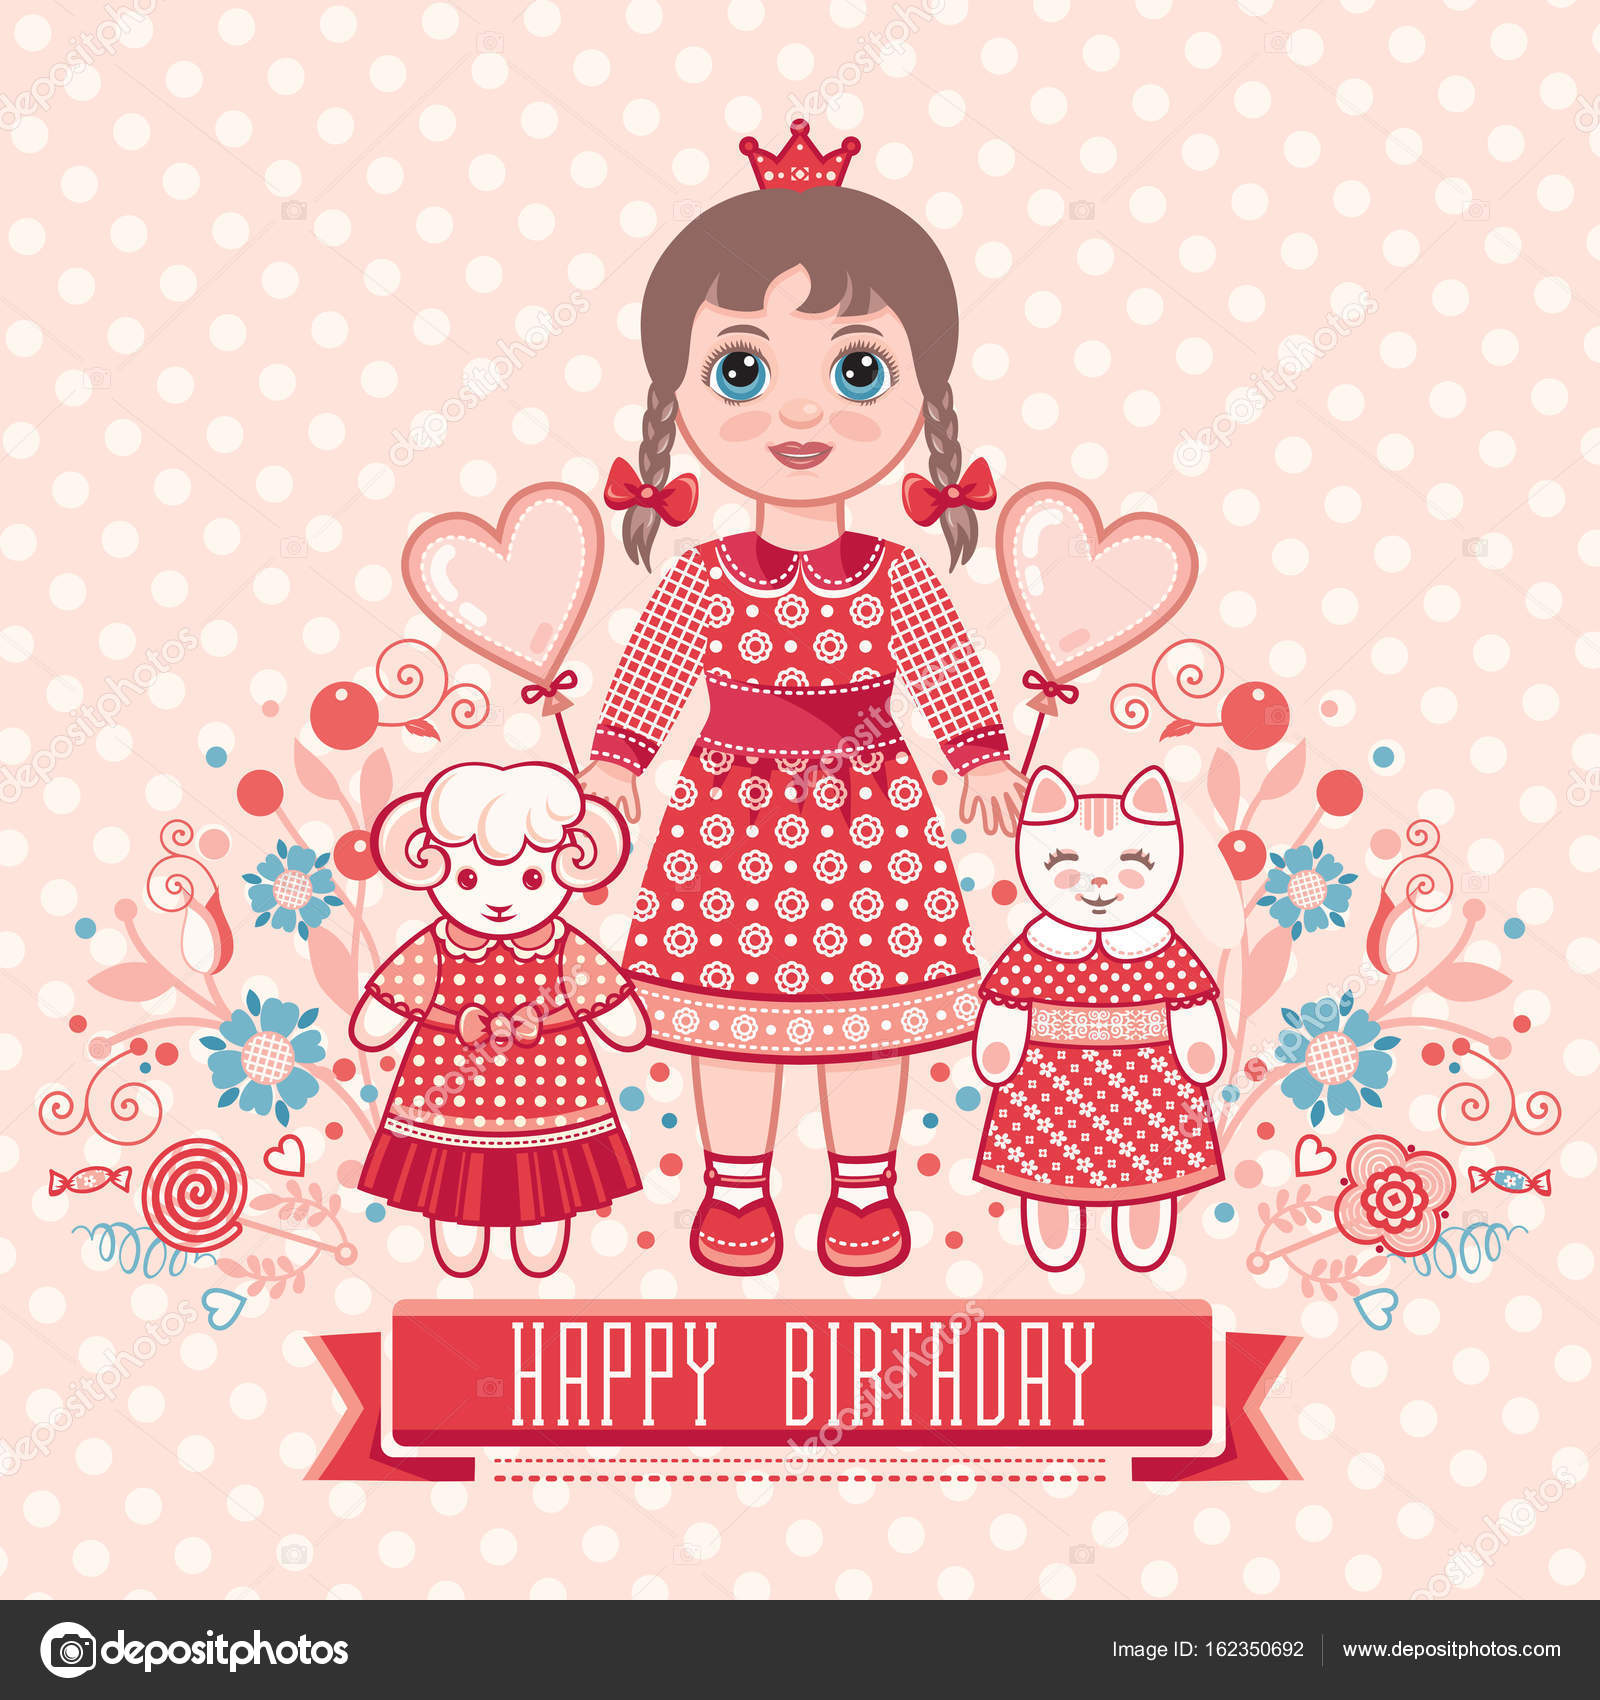 Happy Birthday Greetings Card For Girl Stock Vector Zzn